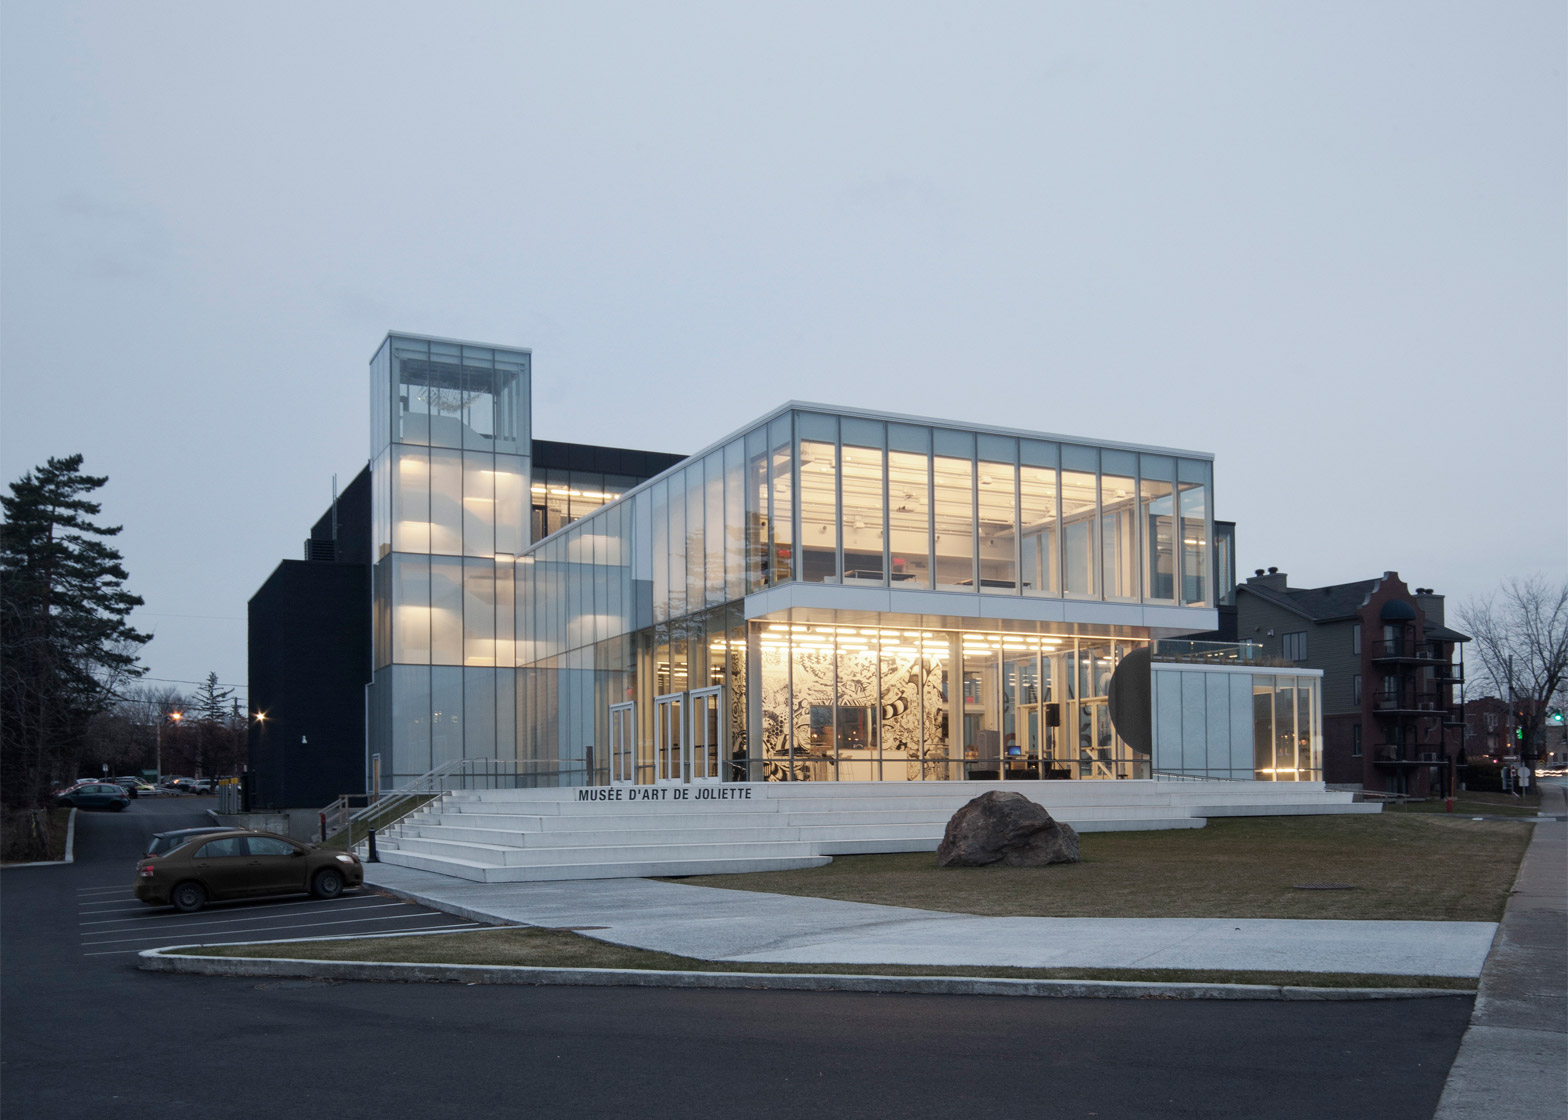 Musee d'art de Joliette by FABG Architectes